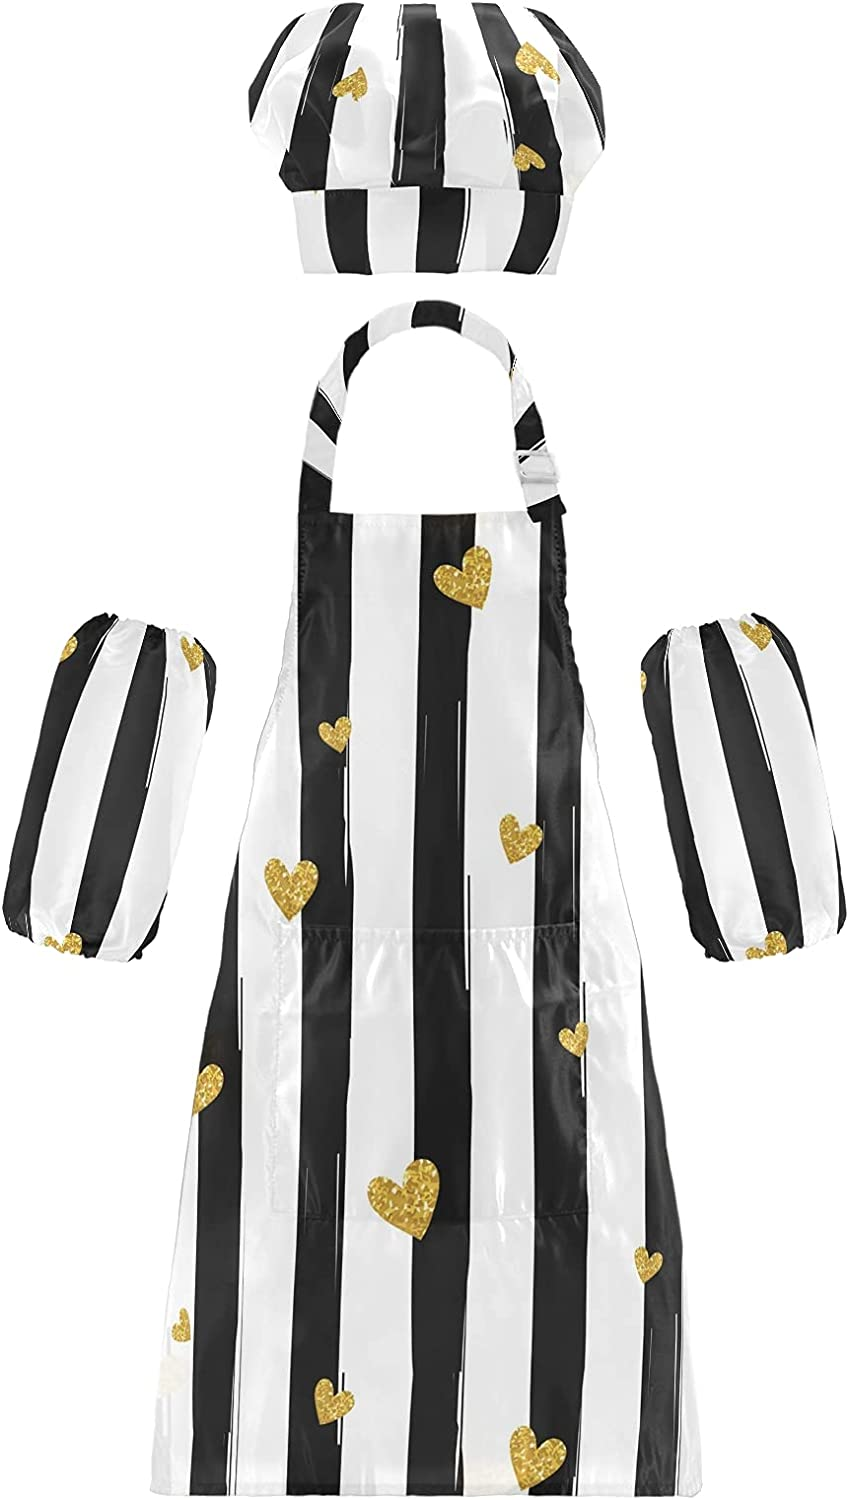 Kids Animer and price revision Apron Chef Hat Set for Waterproof Heart Stripe w Boys Girls Popular shop is the lowest price challenge